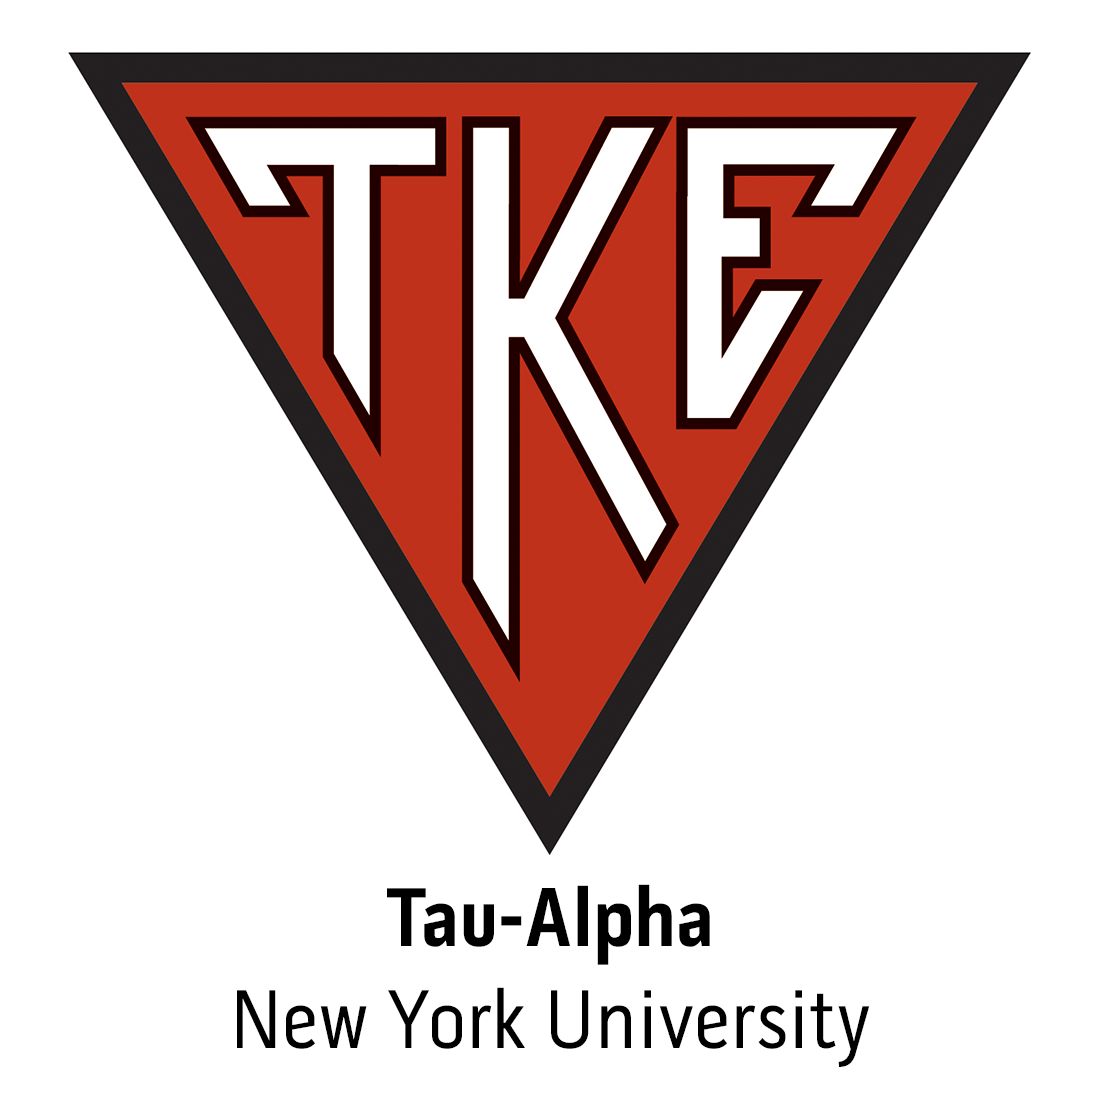 Tau-Alpha Chapter at New York University